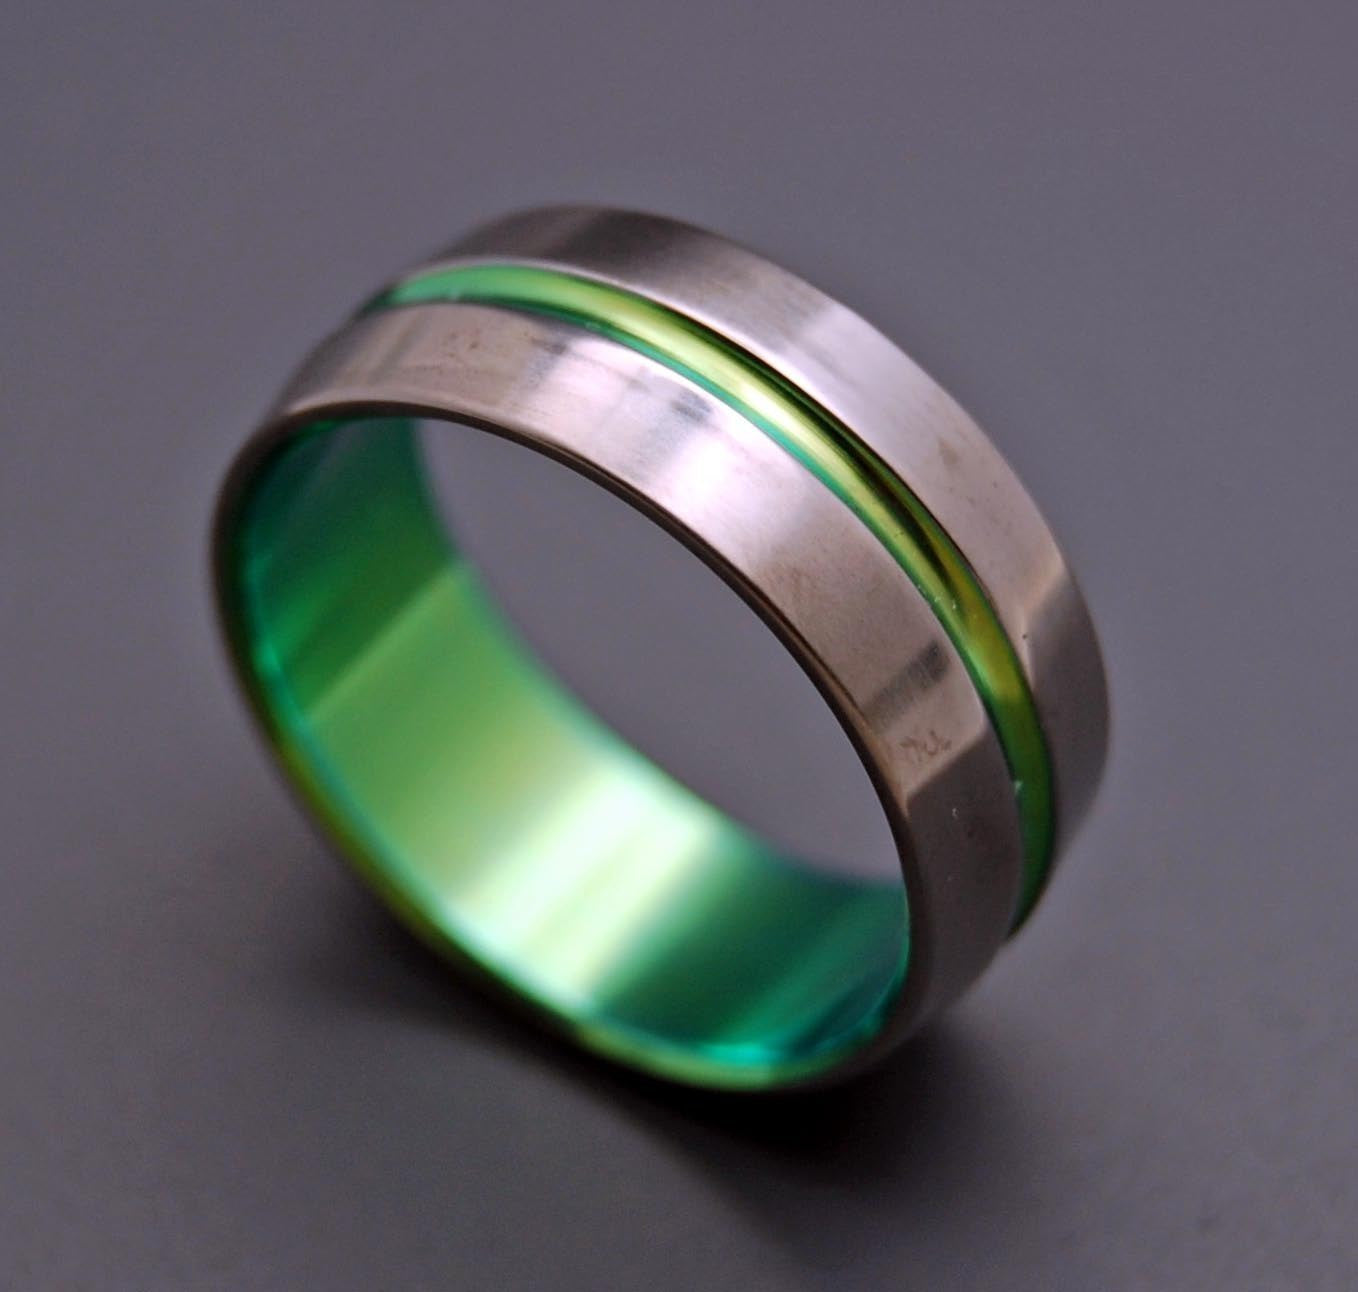 green lantern ring green lantern ring - Green Lantern Wedding Ring